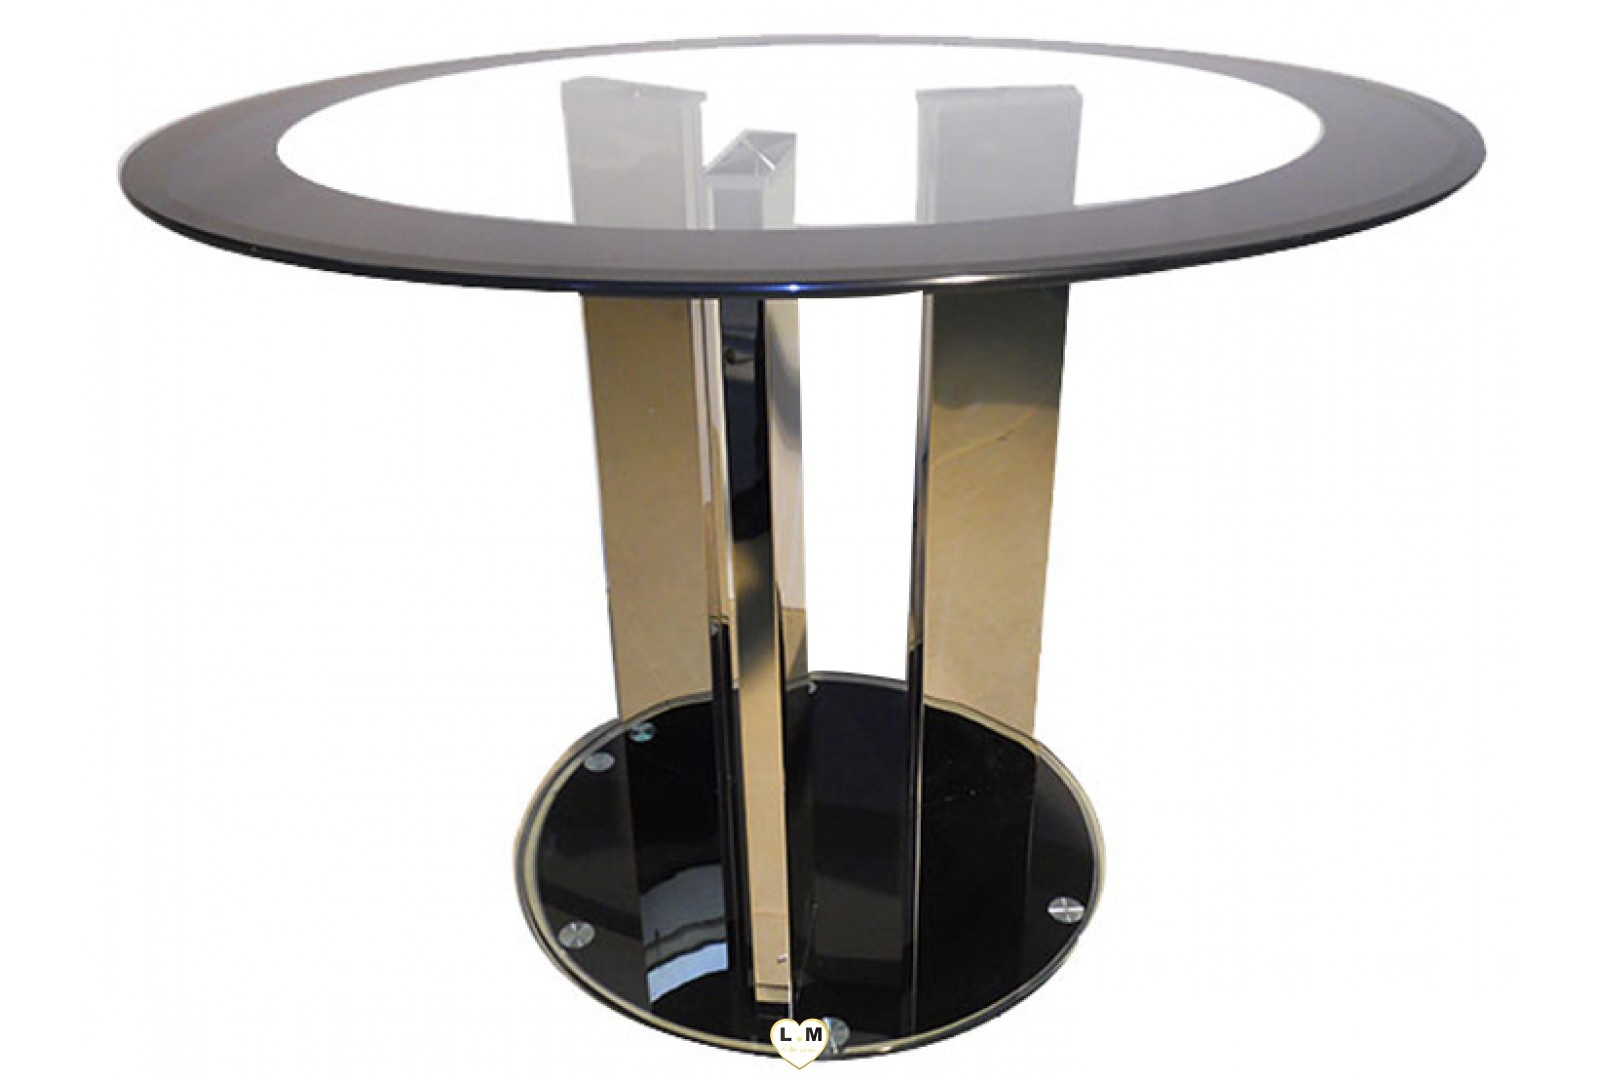 T887 table salle a manger ronde verre transparent for Table salle a manger en verre design ronde